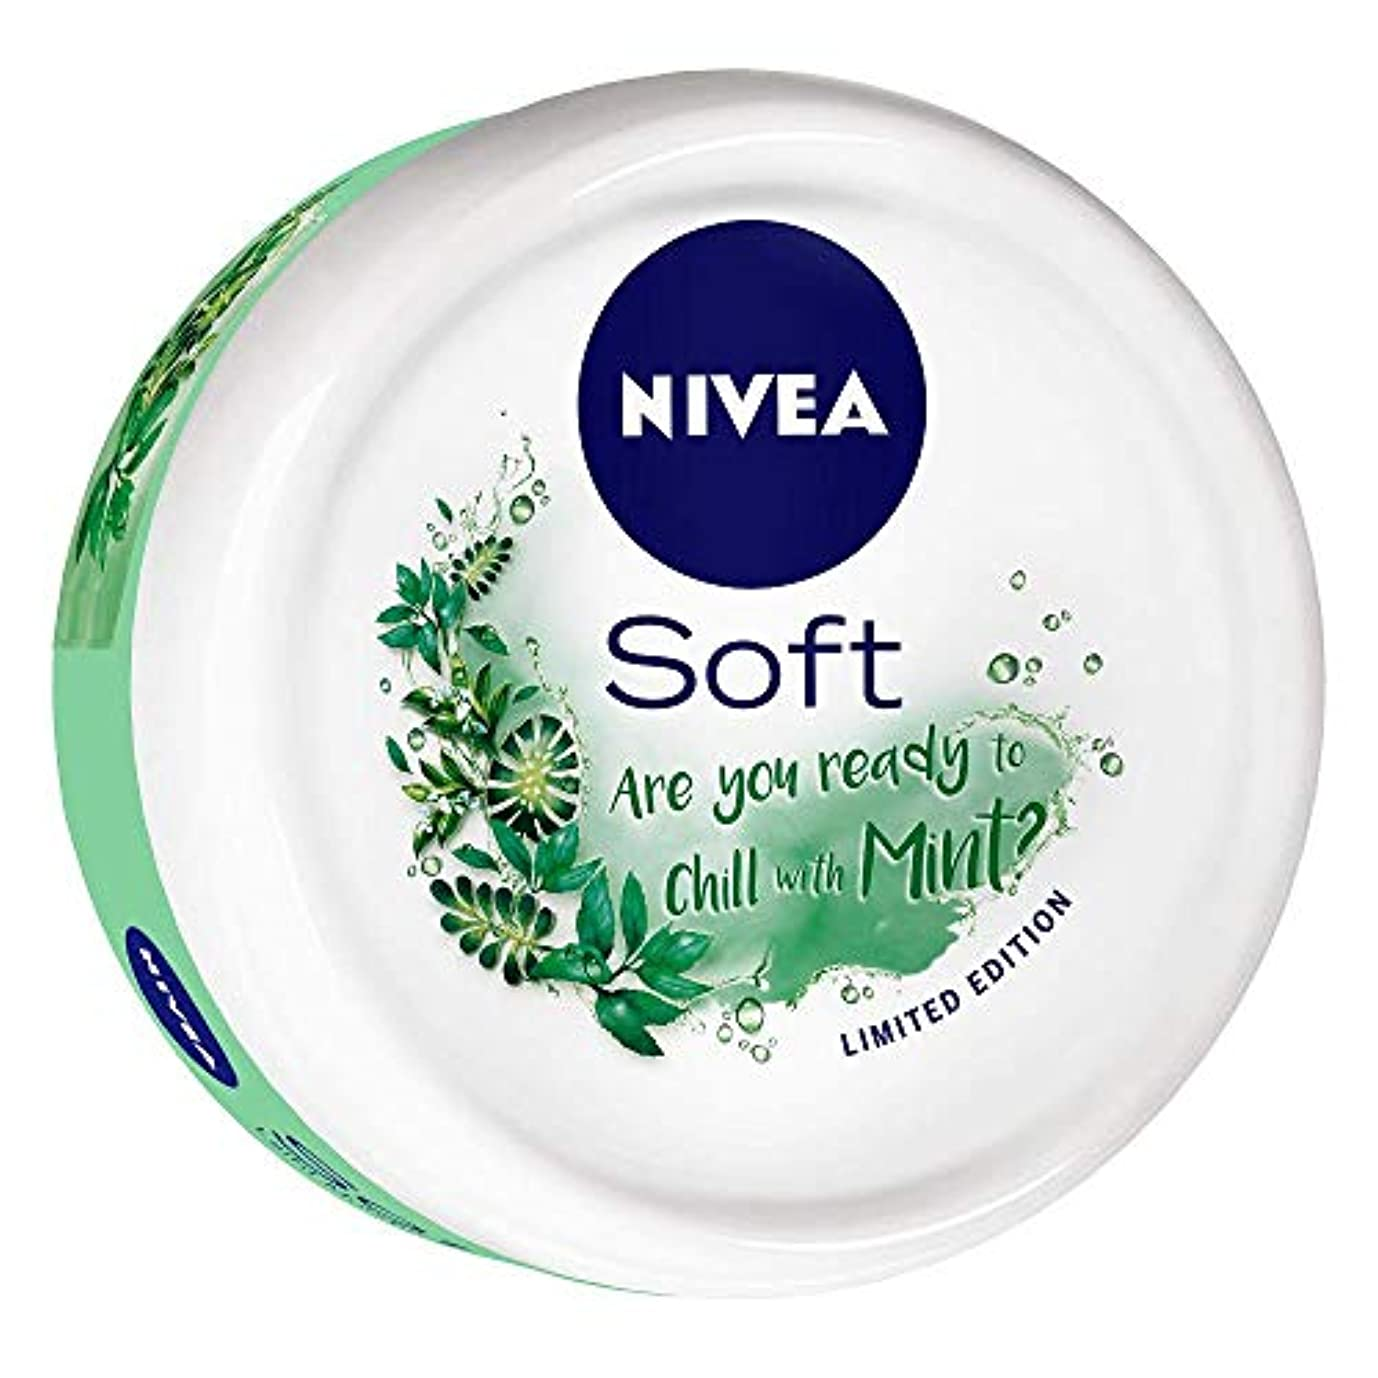 NIVEA Soft Light Moisturizer Chilled Mint With Vitamin E & Jojoba Oil, 200 ml